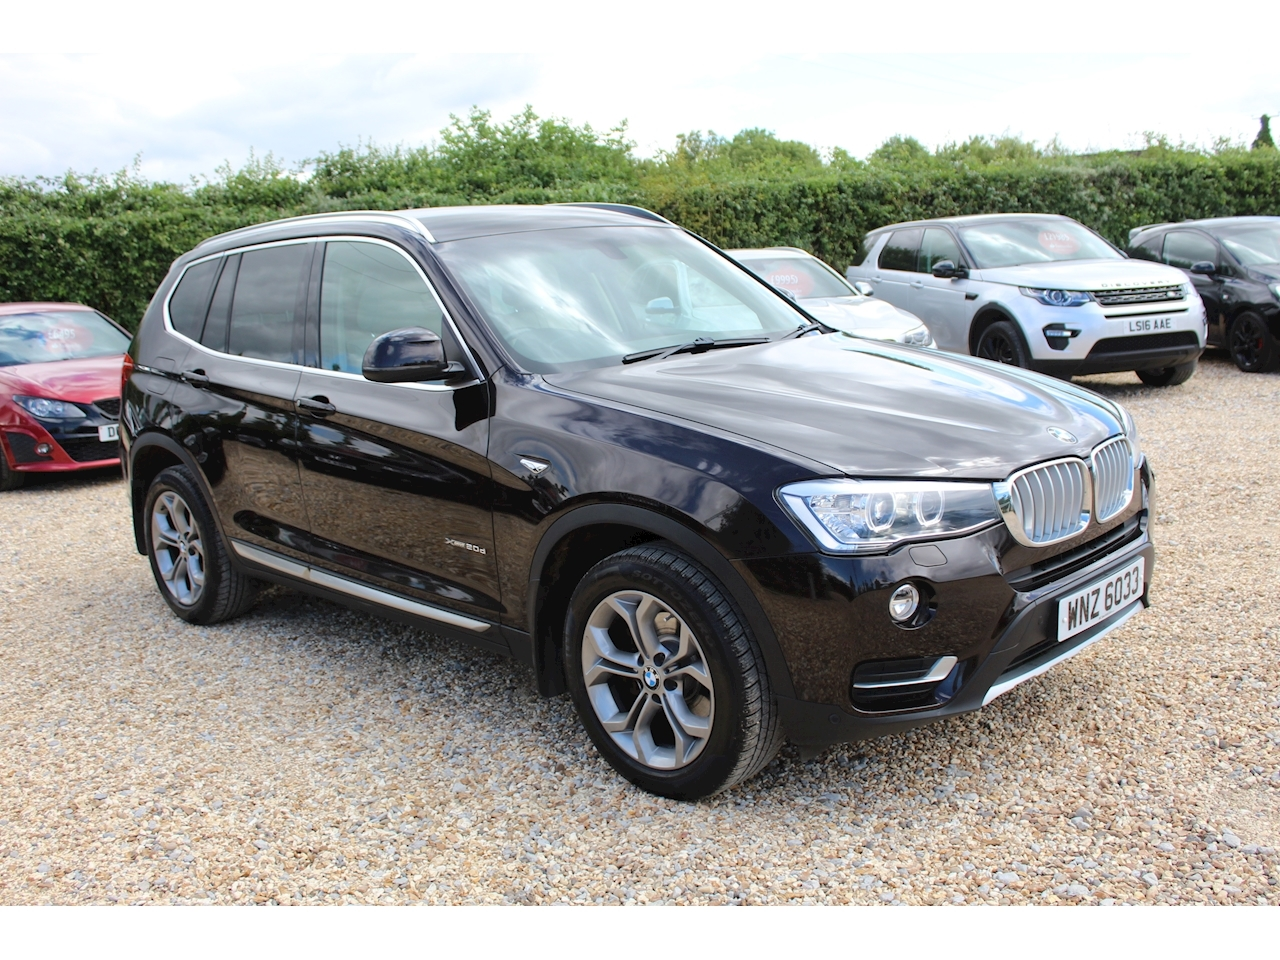 BMW X3 Xdrive20d Xline Estate 2.0 Automatic Diesel